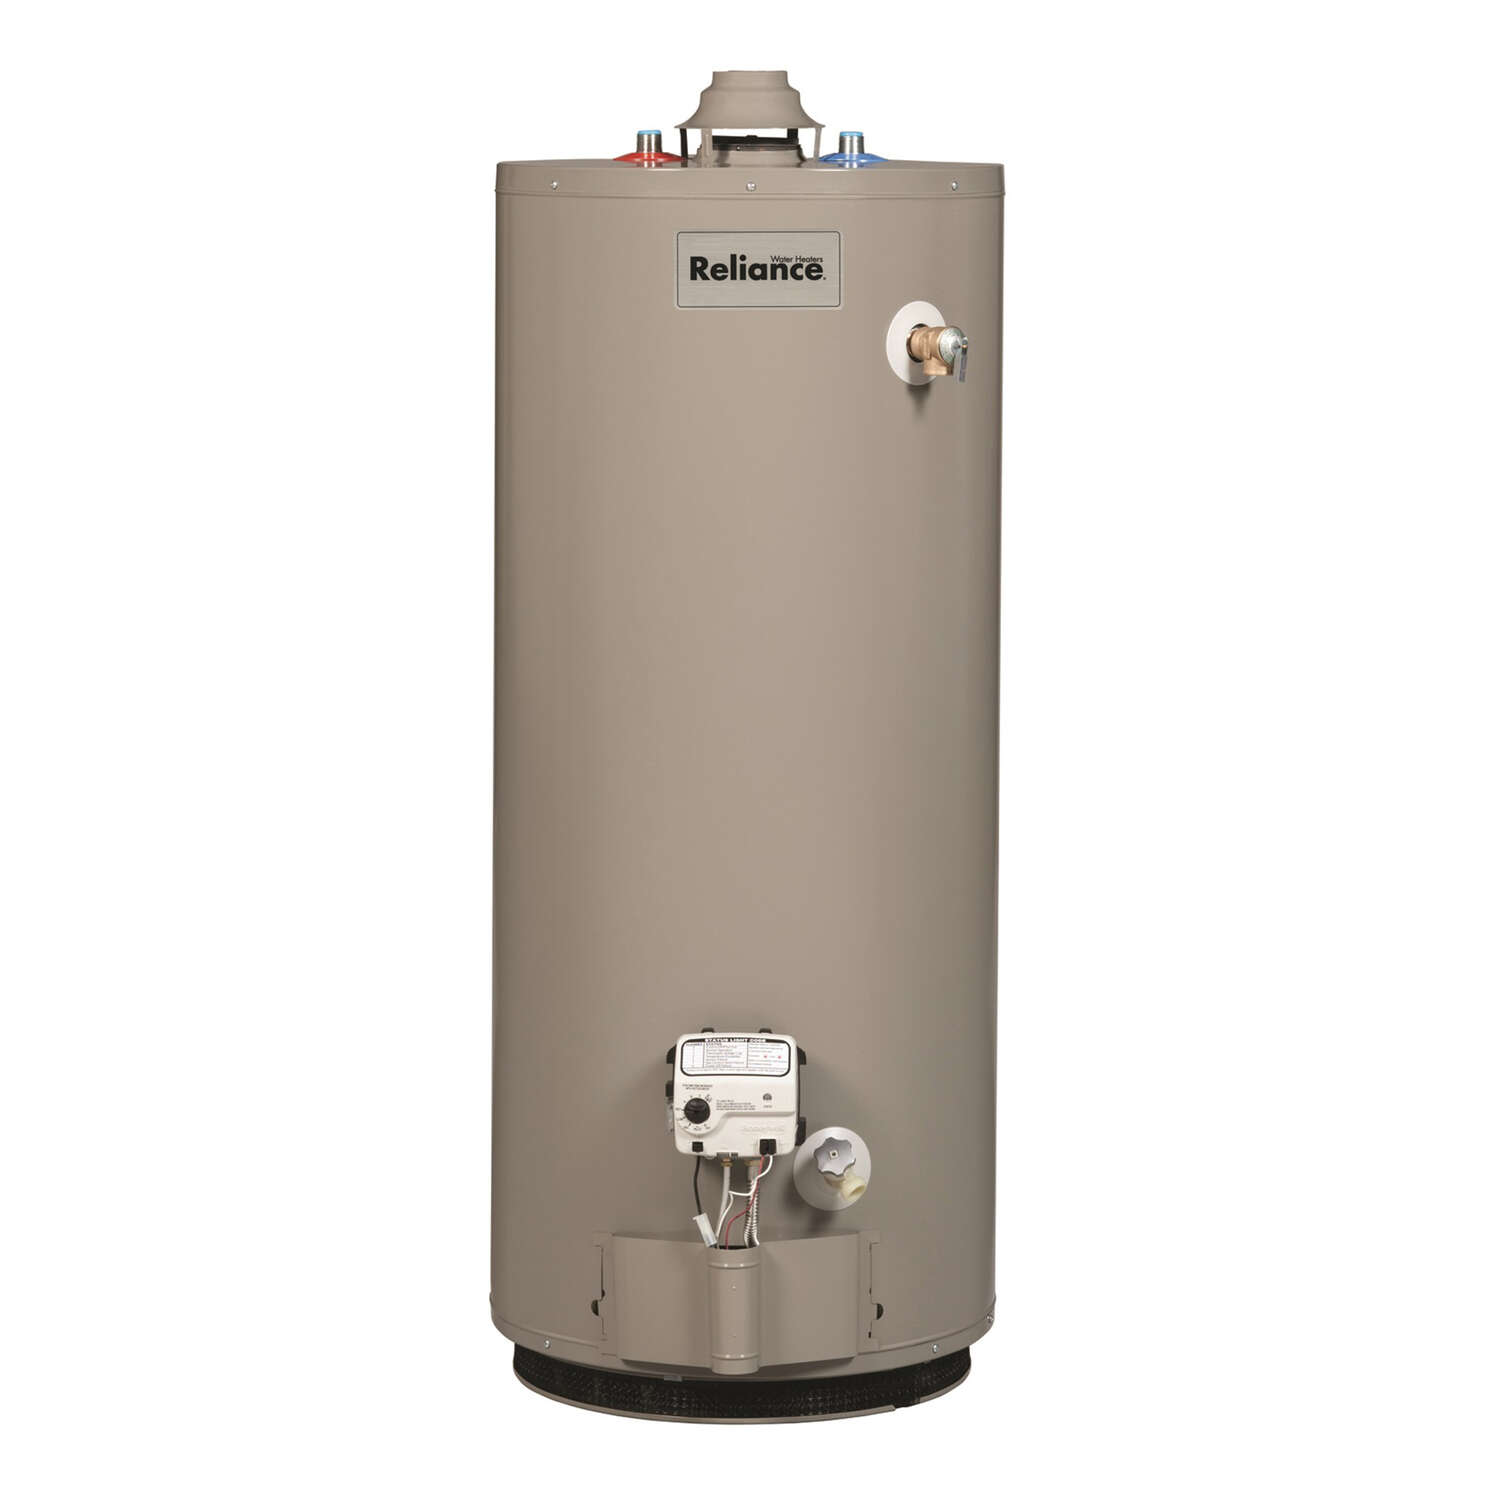 Reliance  30 gal. 35500 BTU Natural Gas  Water Heater